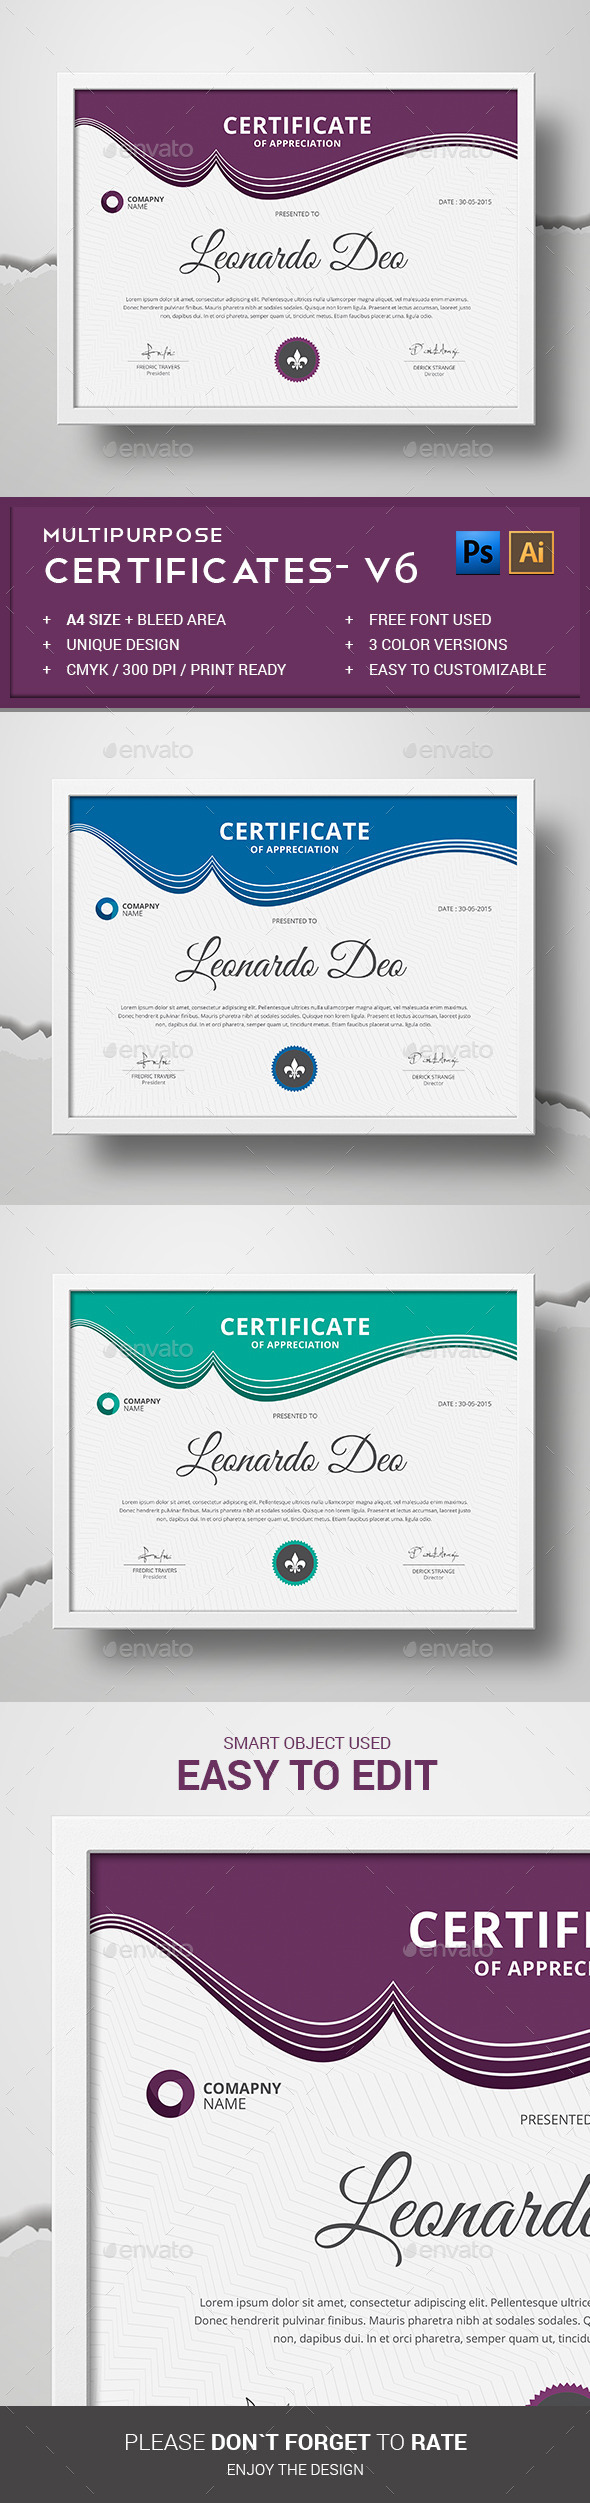 Certificate psd graphics designs templates from graphicriver yelopaper Choice Image